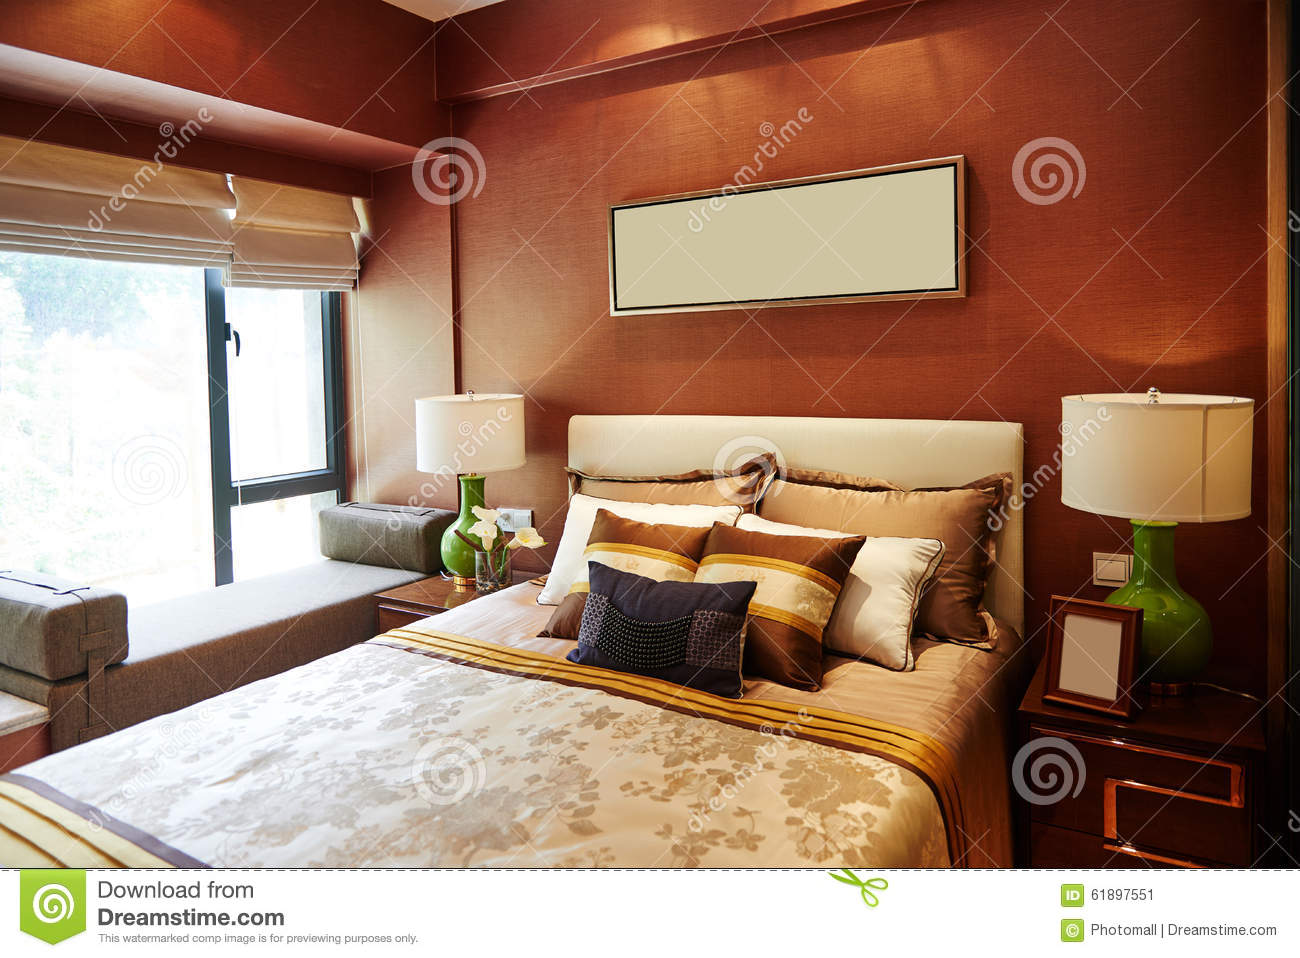 Luxury Home Bedroom Furniture Decoration Stock Photo Image 61897551